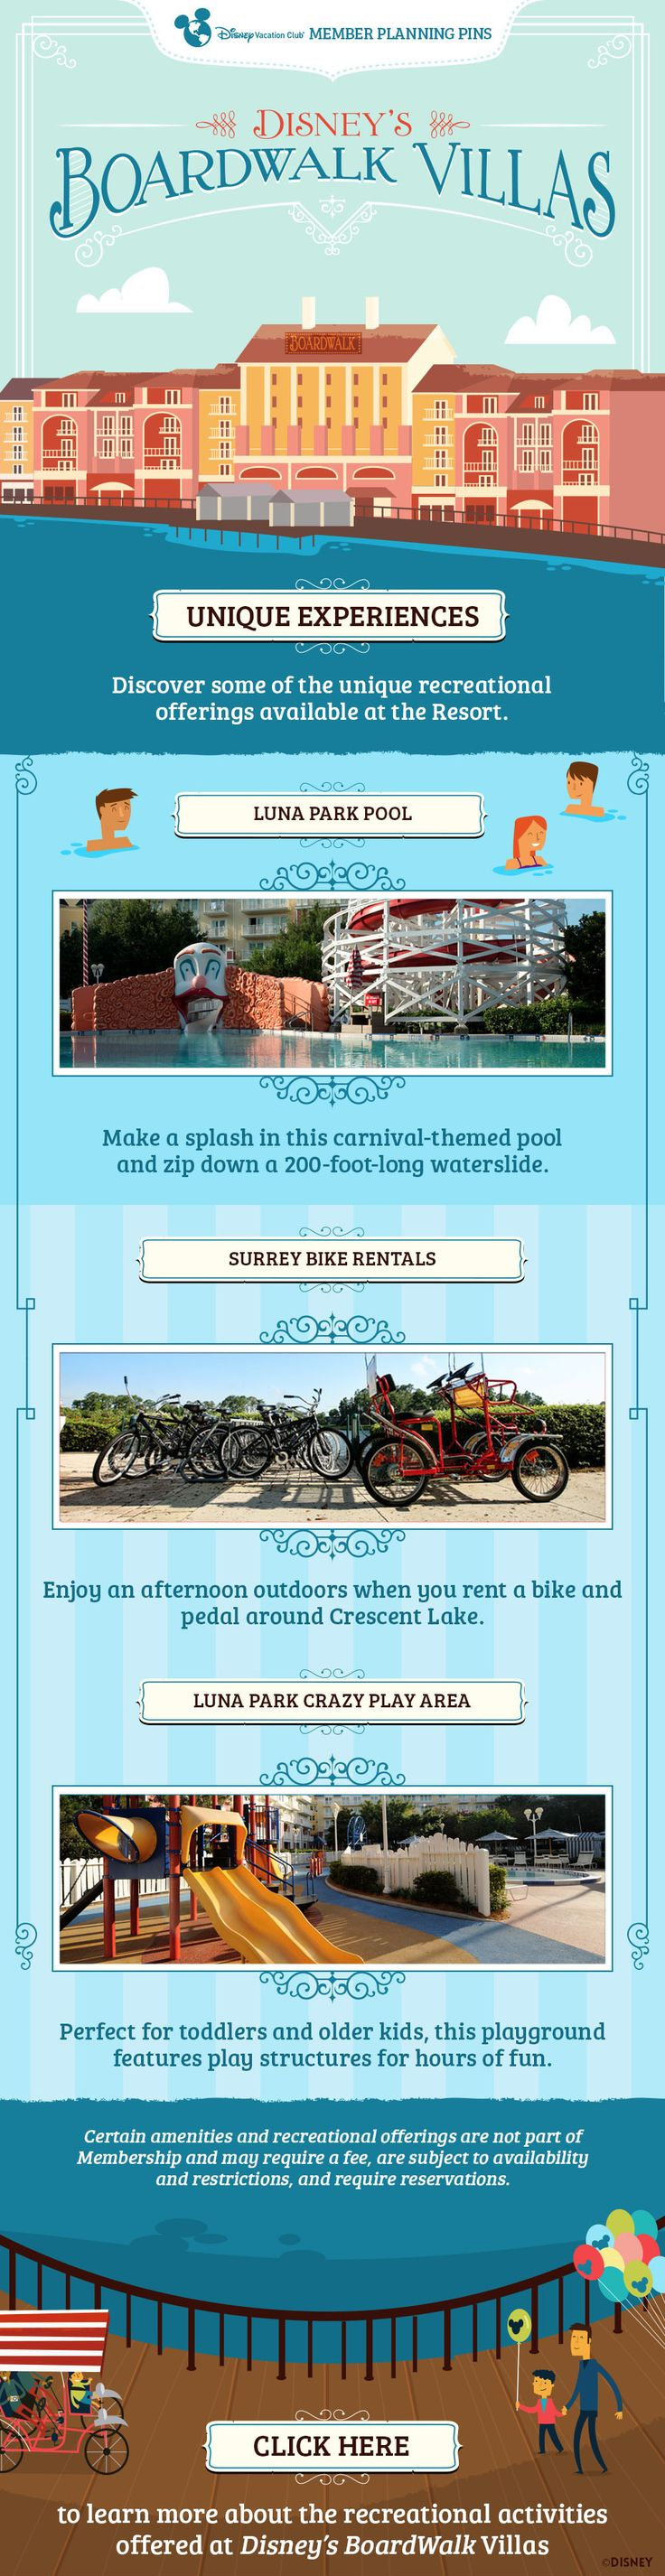 Plan your next Disney Vacation Club vacation to the BoardWalk Villas with our helpful Member Planning Pin showing what unique experiences are available at this Resort. Click to learn more.